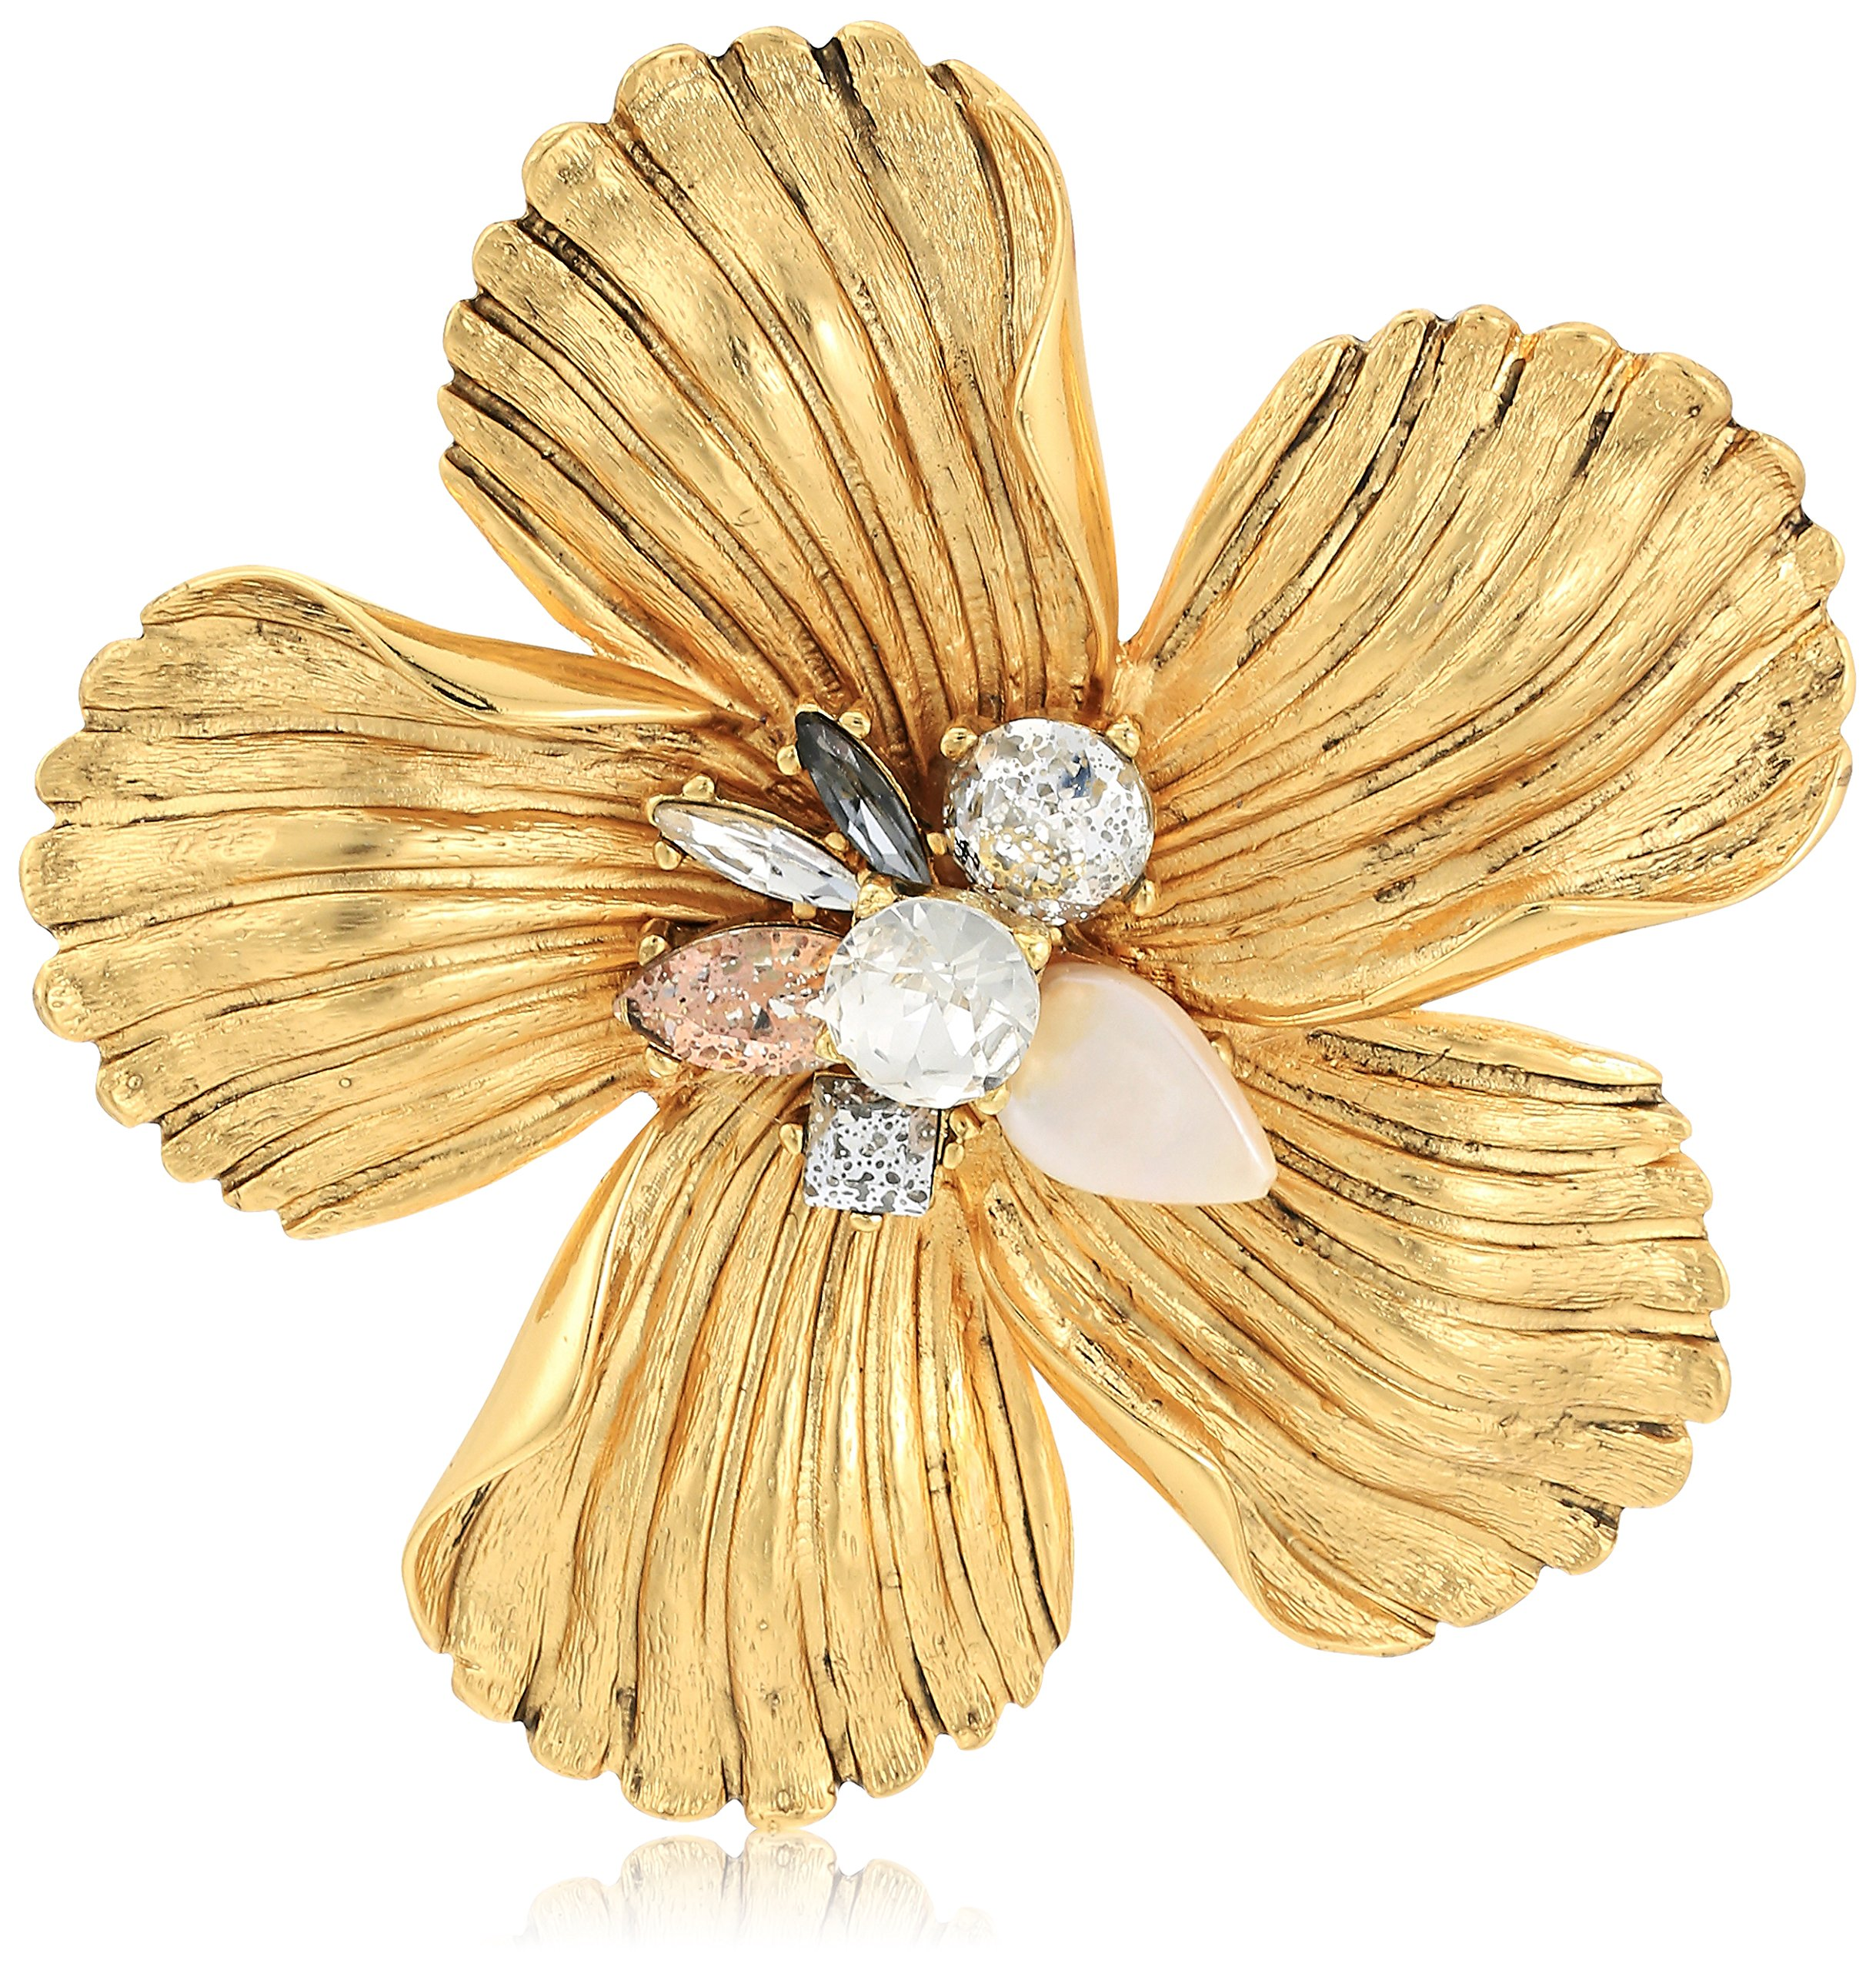 Badgley Mischka Encrusted Flower Brooch and Pin